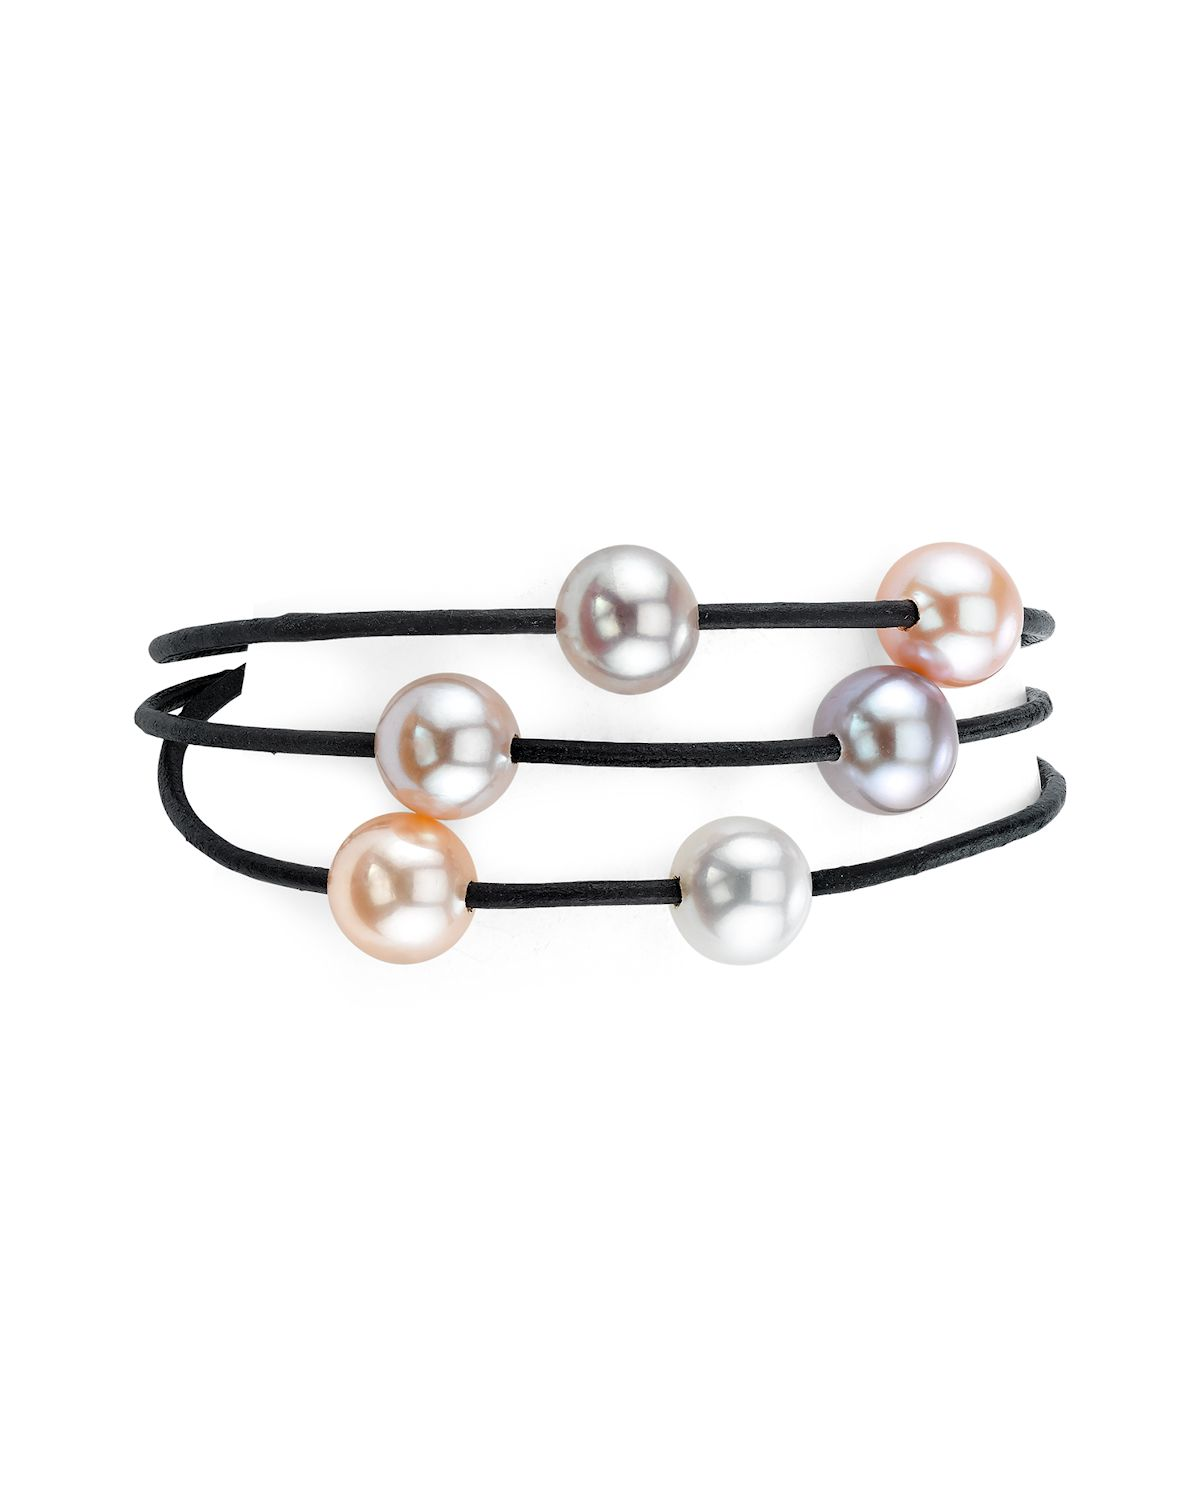 8mm Freshwater Multicolor Pearl Triple Strand Leather Bracelet